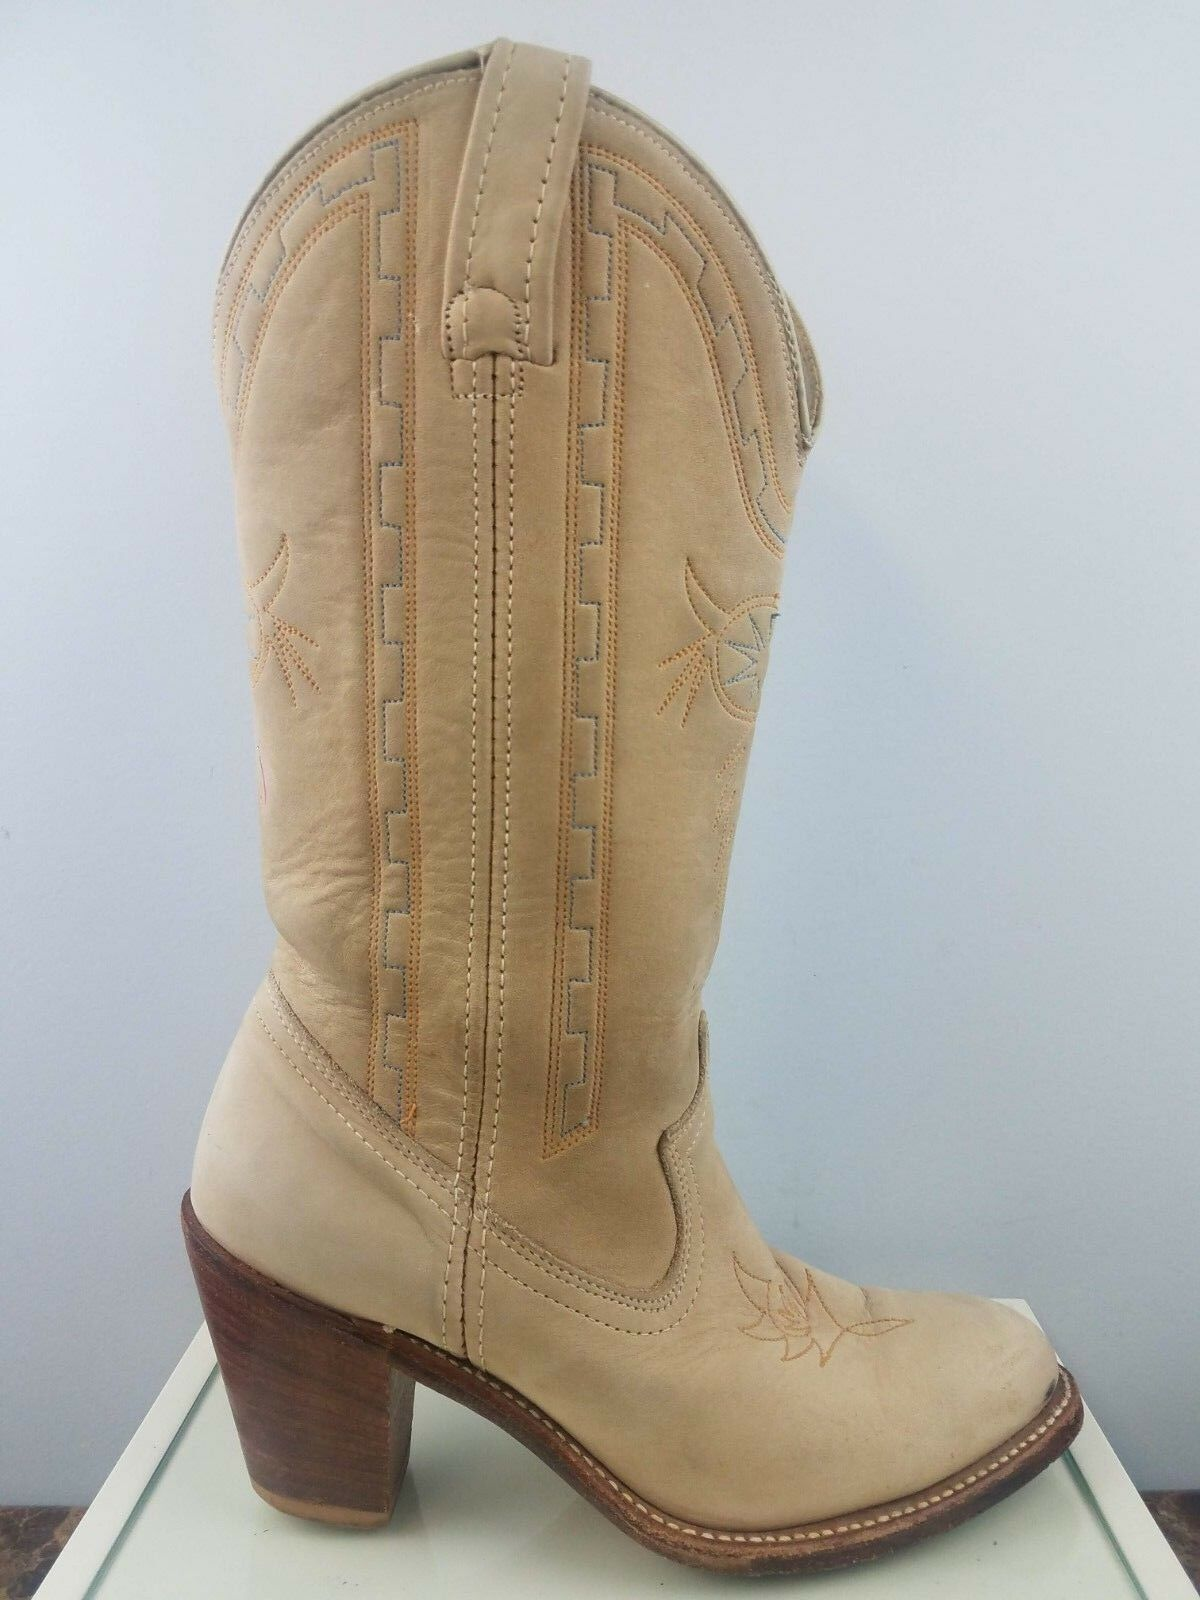 Acme Dingo Marrón Cuero tire Punta rojoonda Fileteado occidental botas de vaquero para mujer 6.5